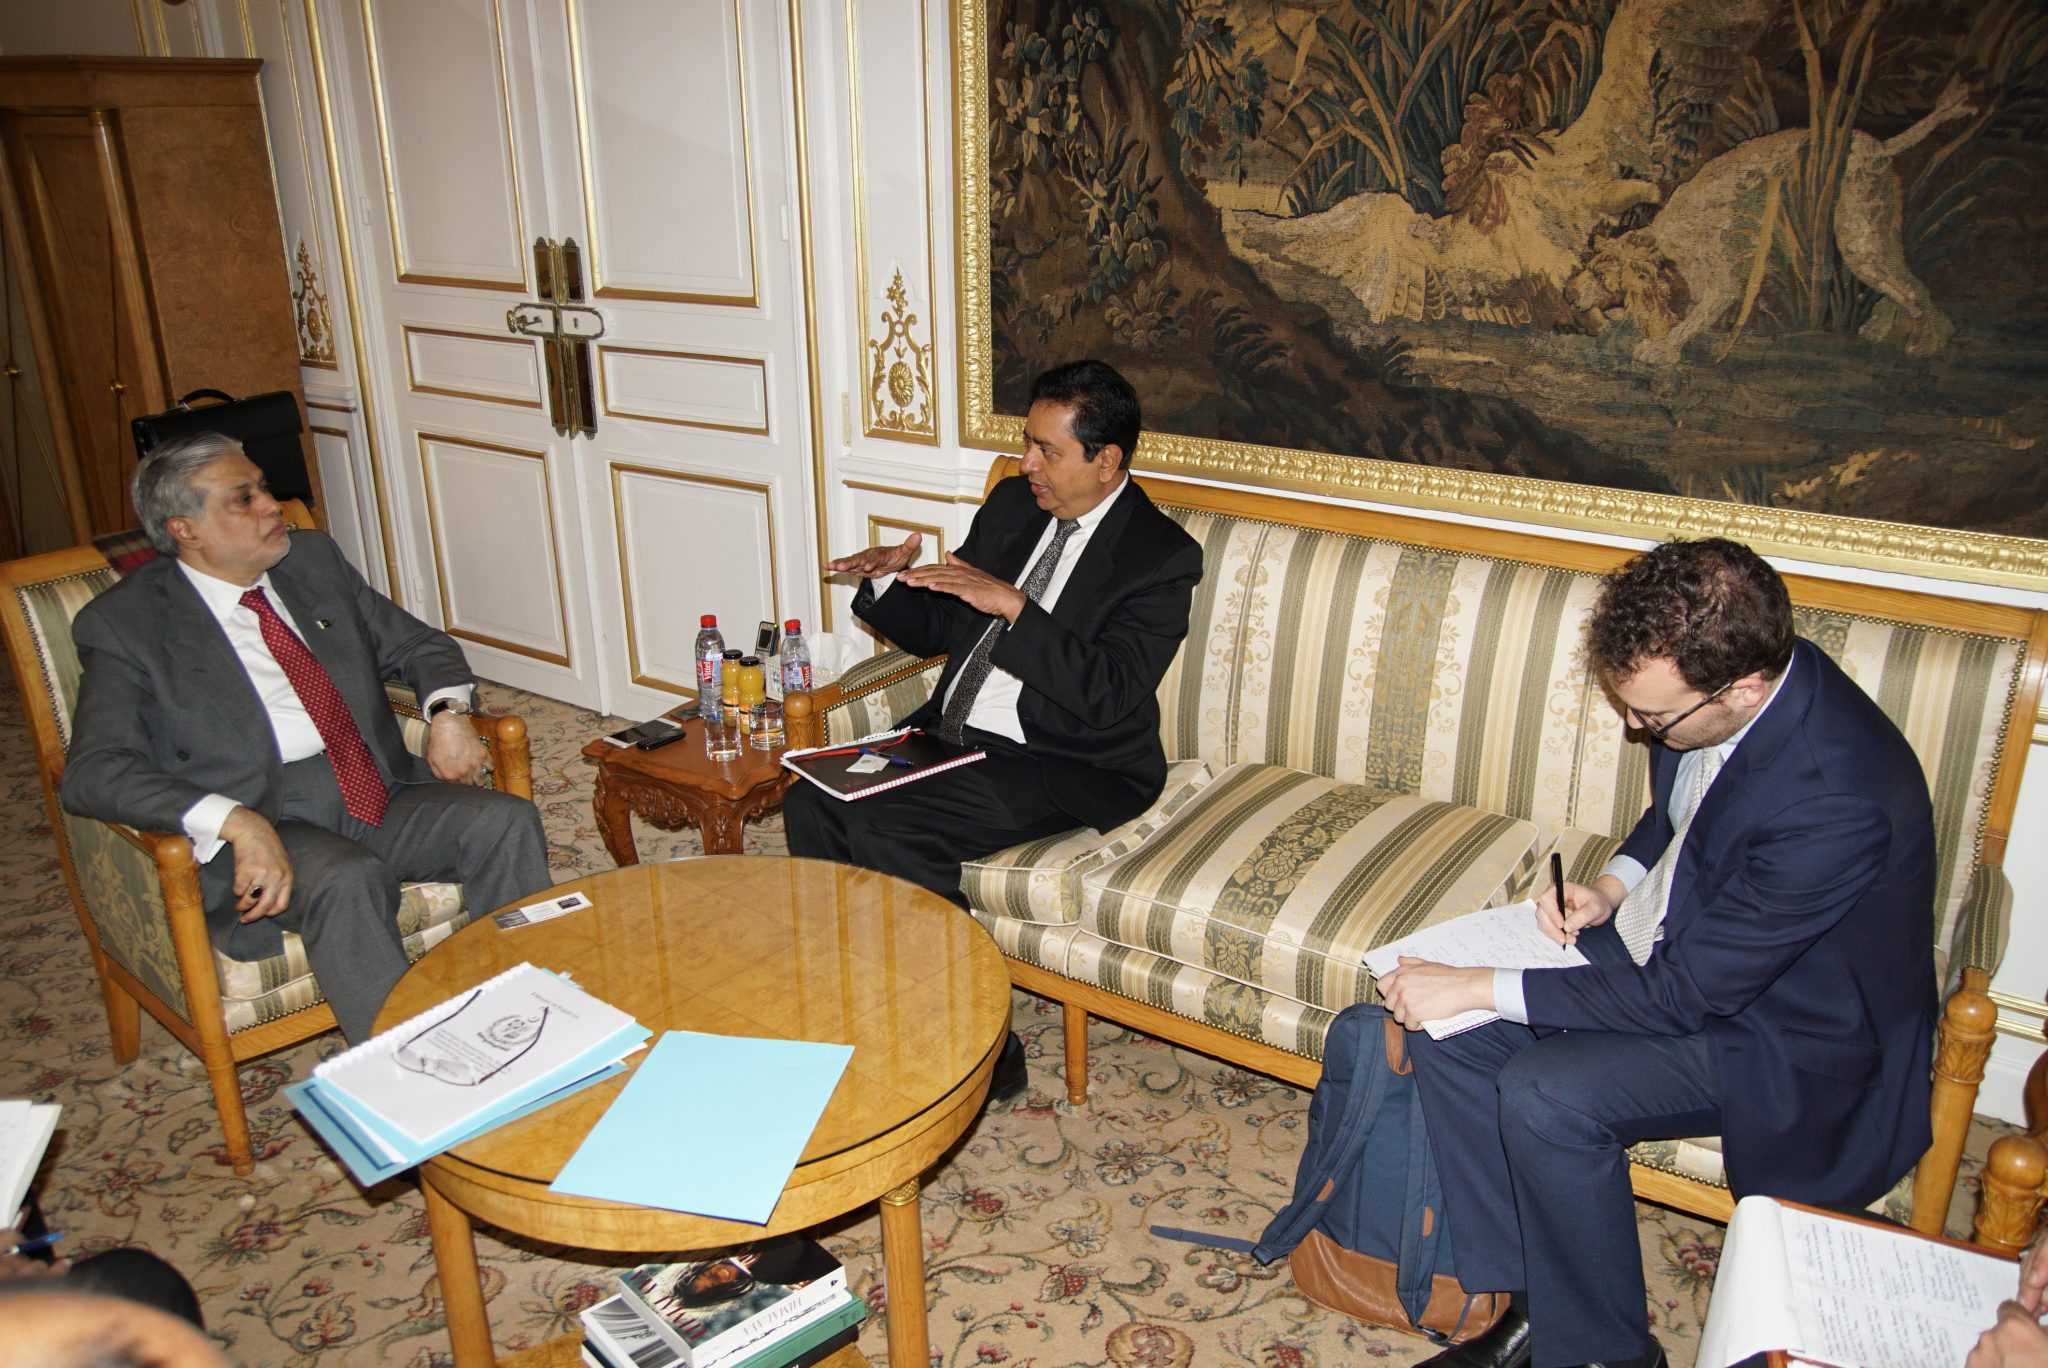 the-finance-minister-meets-with-mr-sanjay-pradhan-ceo-open-government-partnership-who-called-on-him-the-embassy-of-pakistan-paris-today-9th-dec-2016